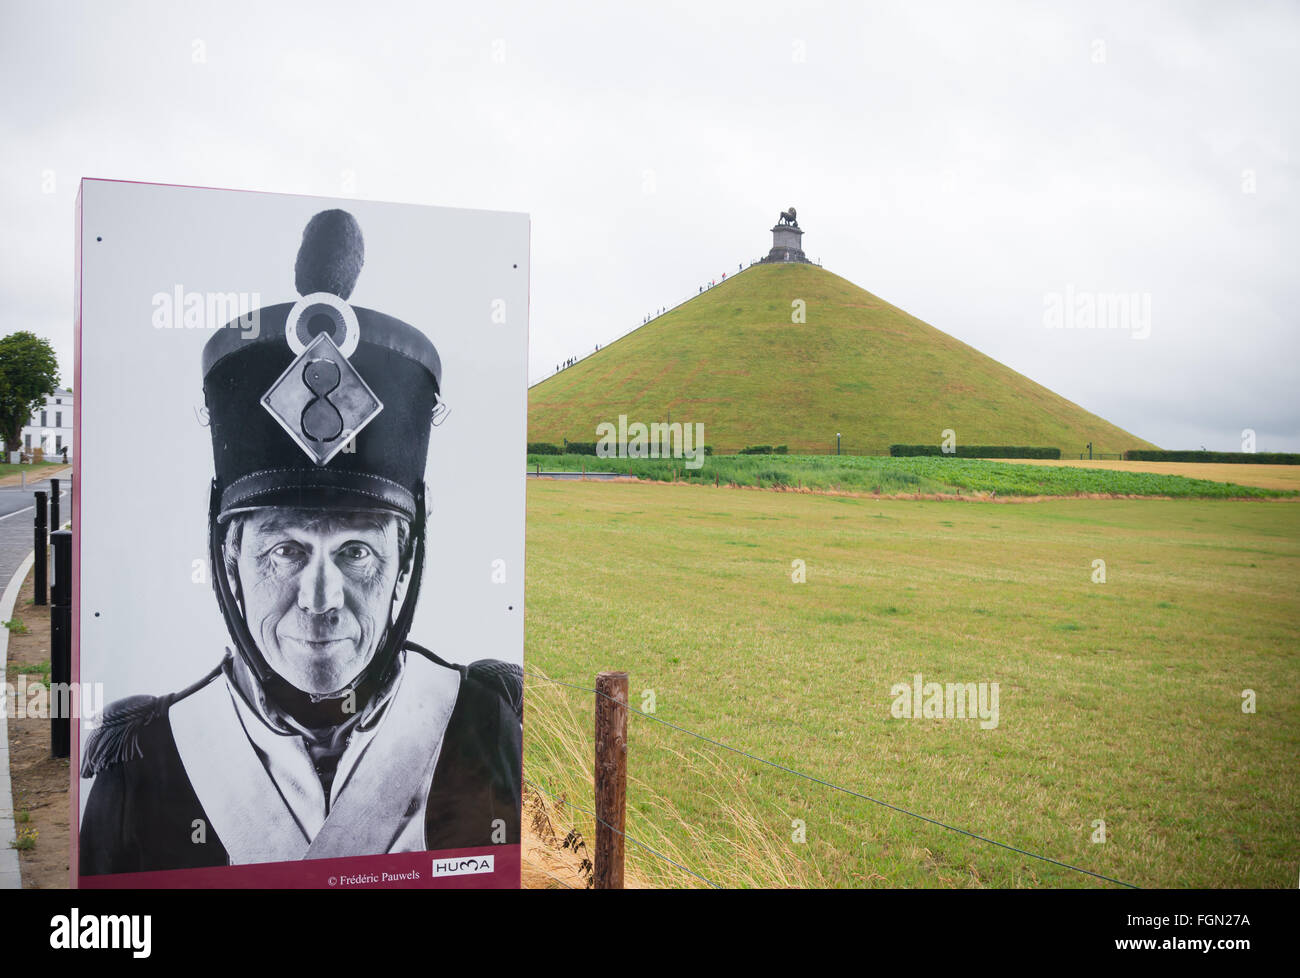 Waterloo, Belgium - July 13, 2015: Poster at the entrance of the Waterloo memorial. - Stock Image